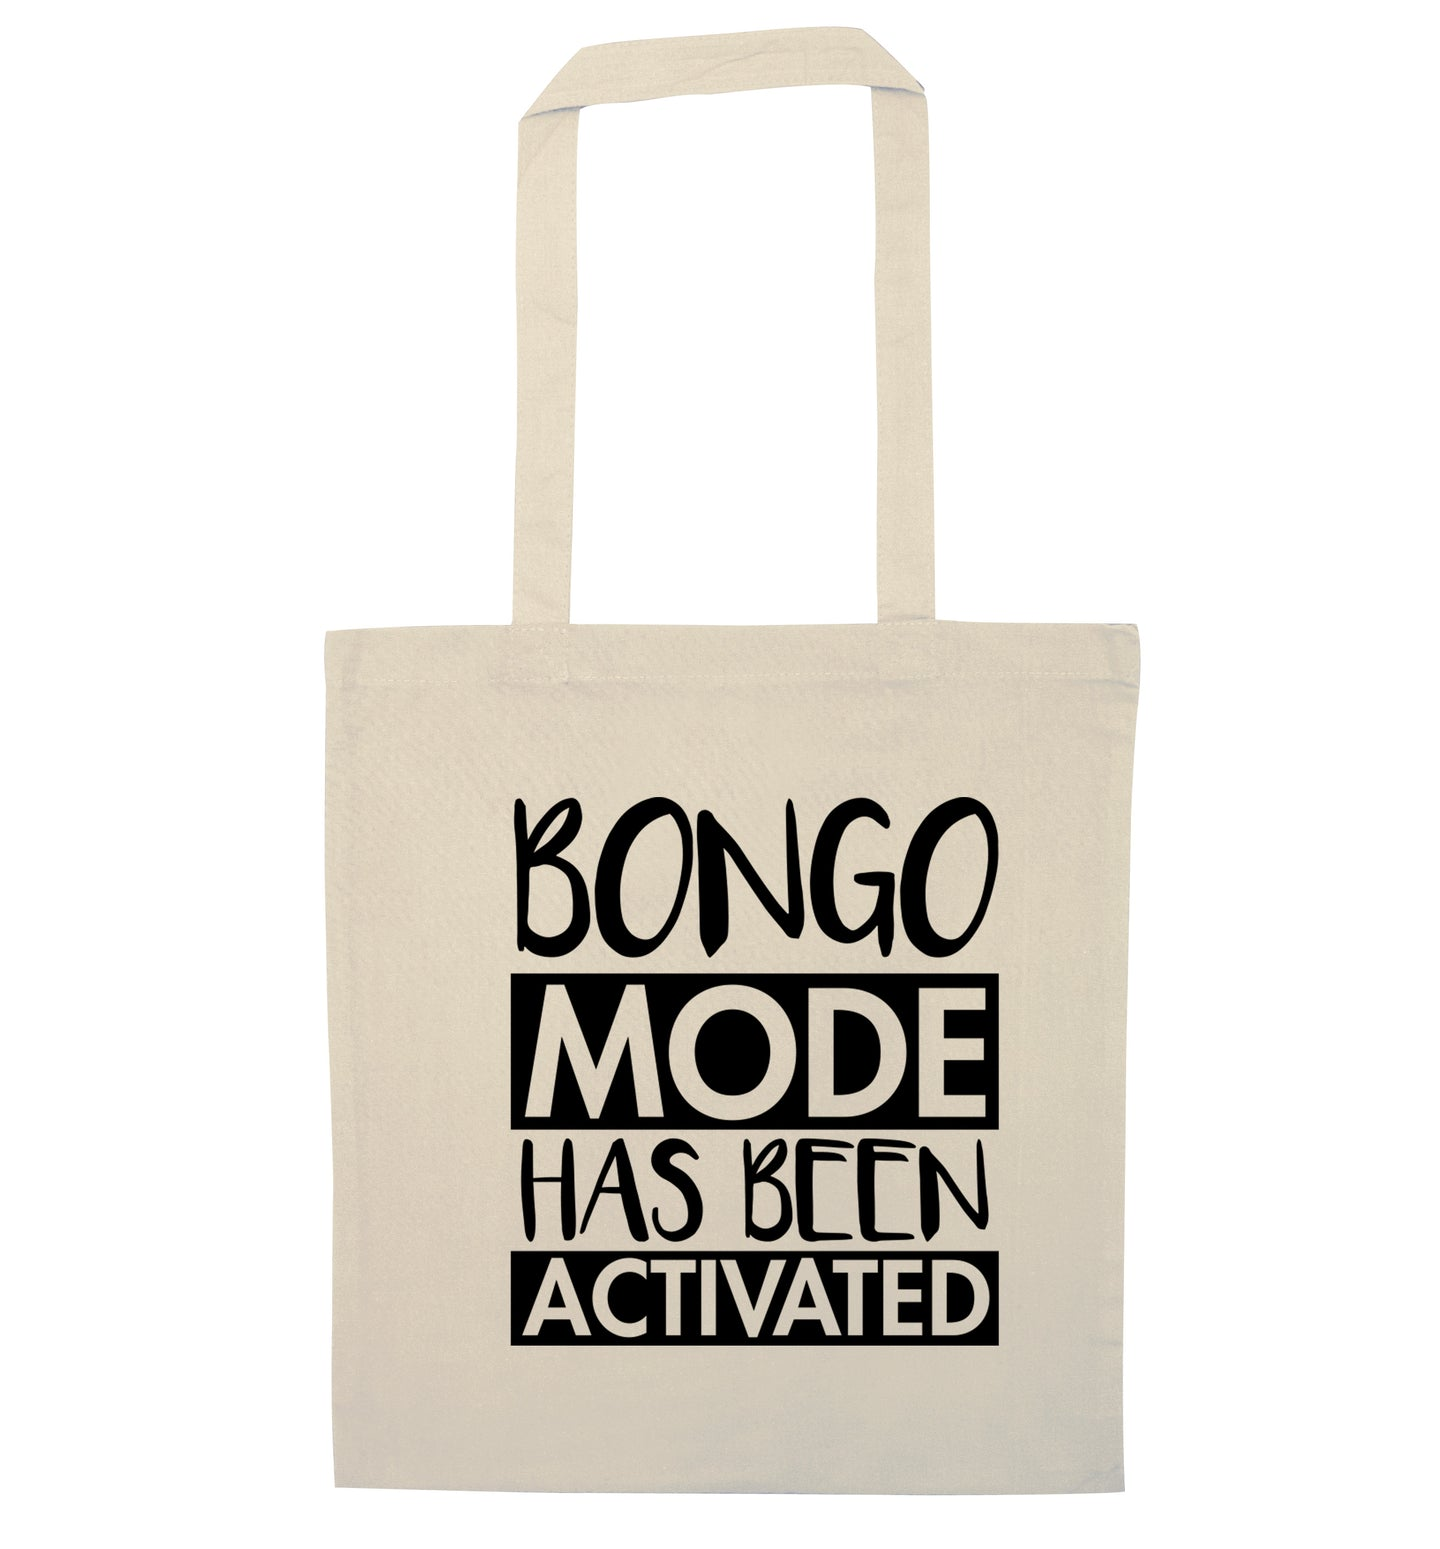 Bongo mode has been activated natural tote bag